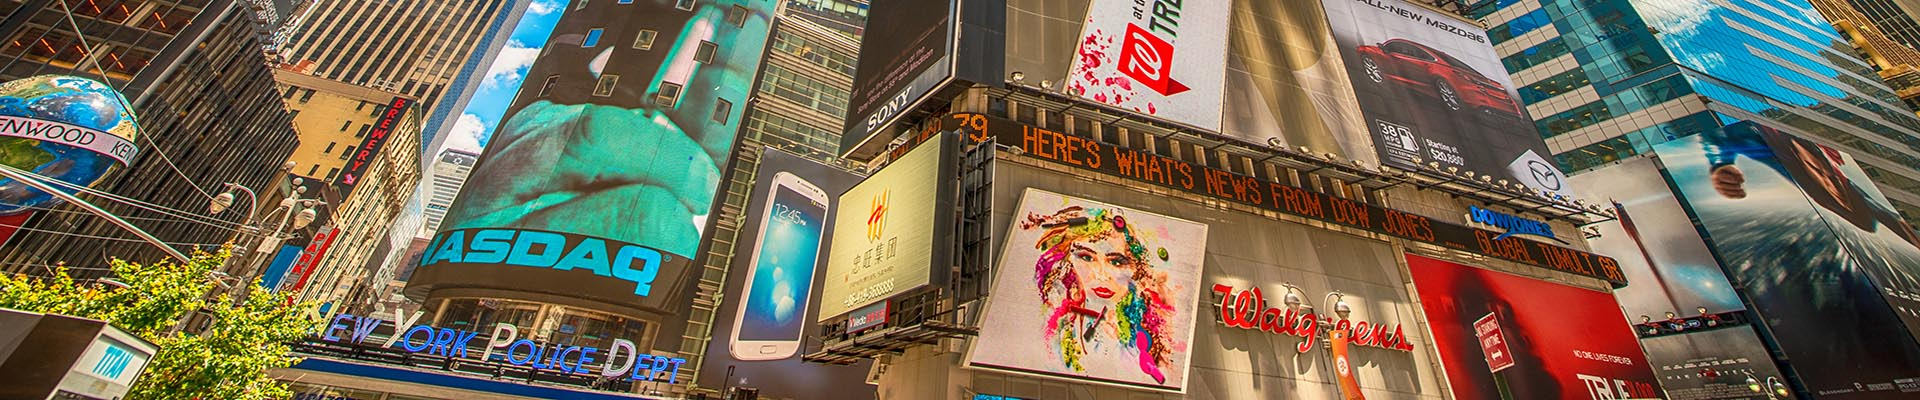 http://xn--80aadem4ack2bicjt0o.xn--p1ai/wp-content/uploads/2020/05/times-square-new-york-billboards-ss-19201.jpg